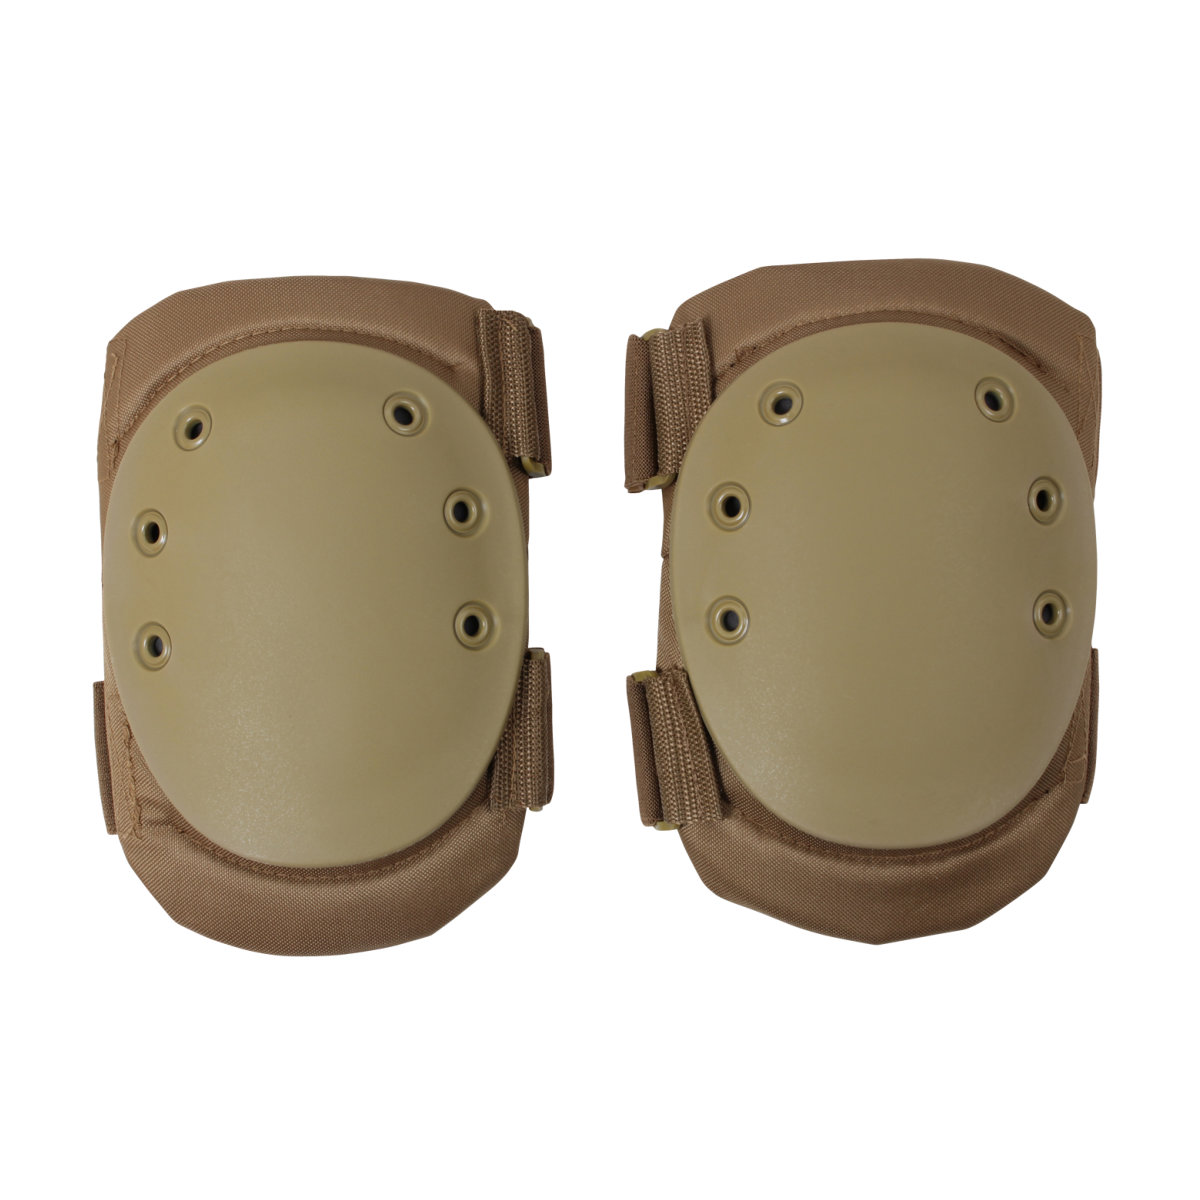 Rothco Tactical Knee Pads, Adjustable Protective Gear